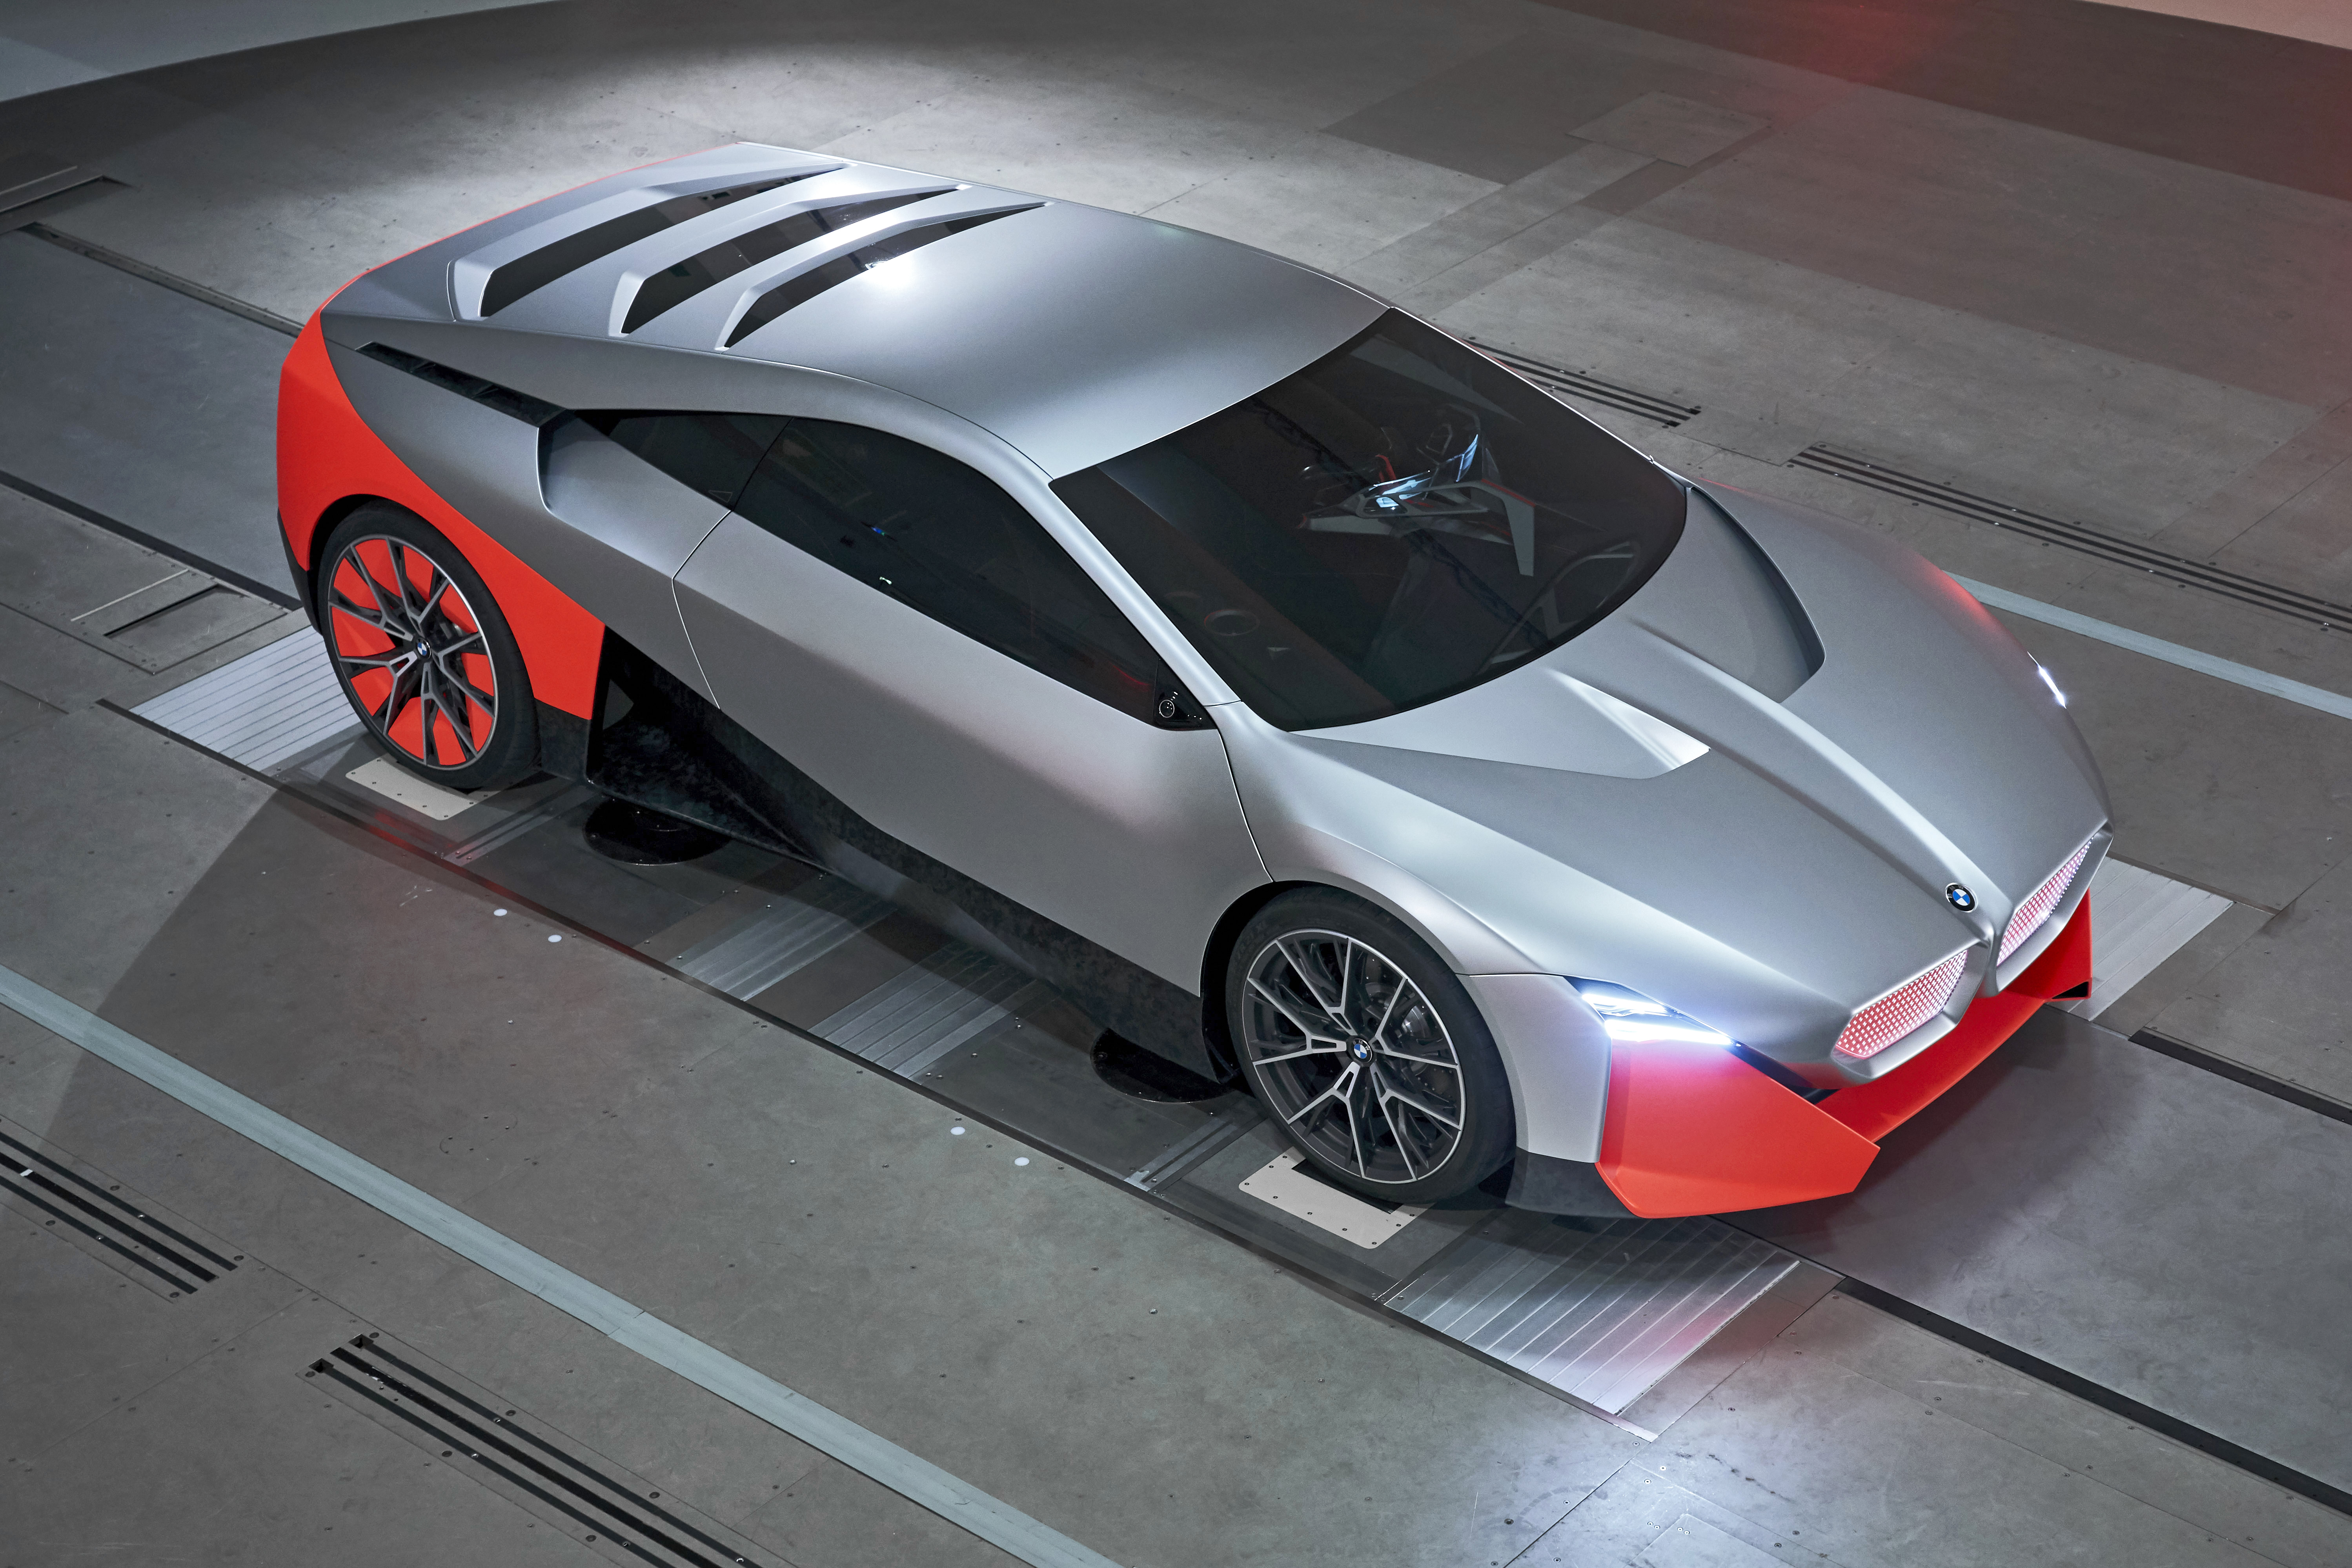 Bmw Unveils Electric Concept That Looks Like Next Gen I8 Sports Car